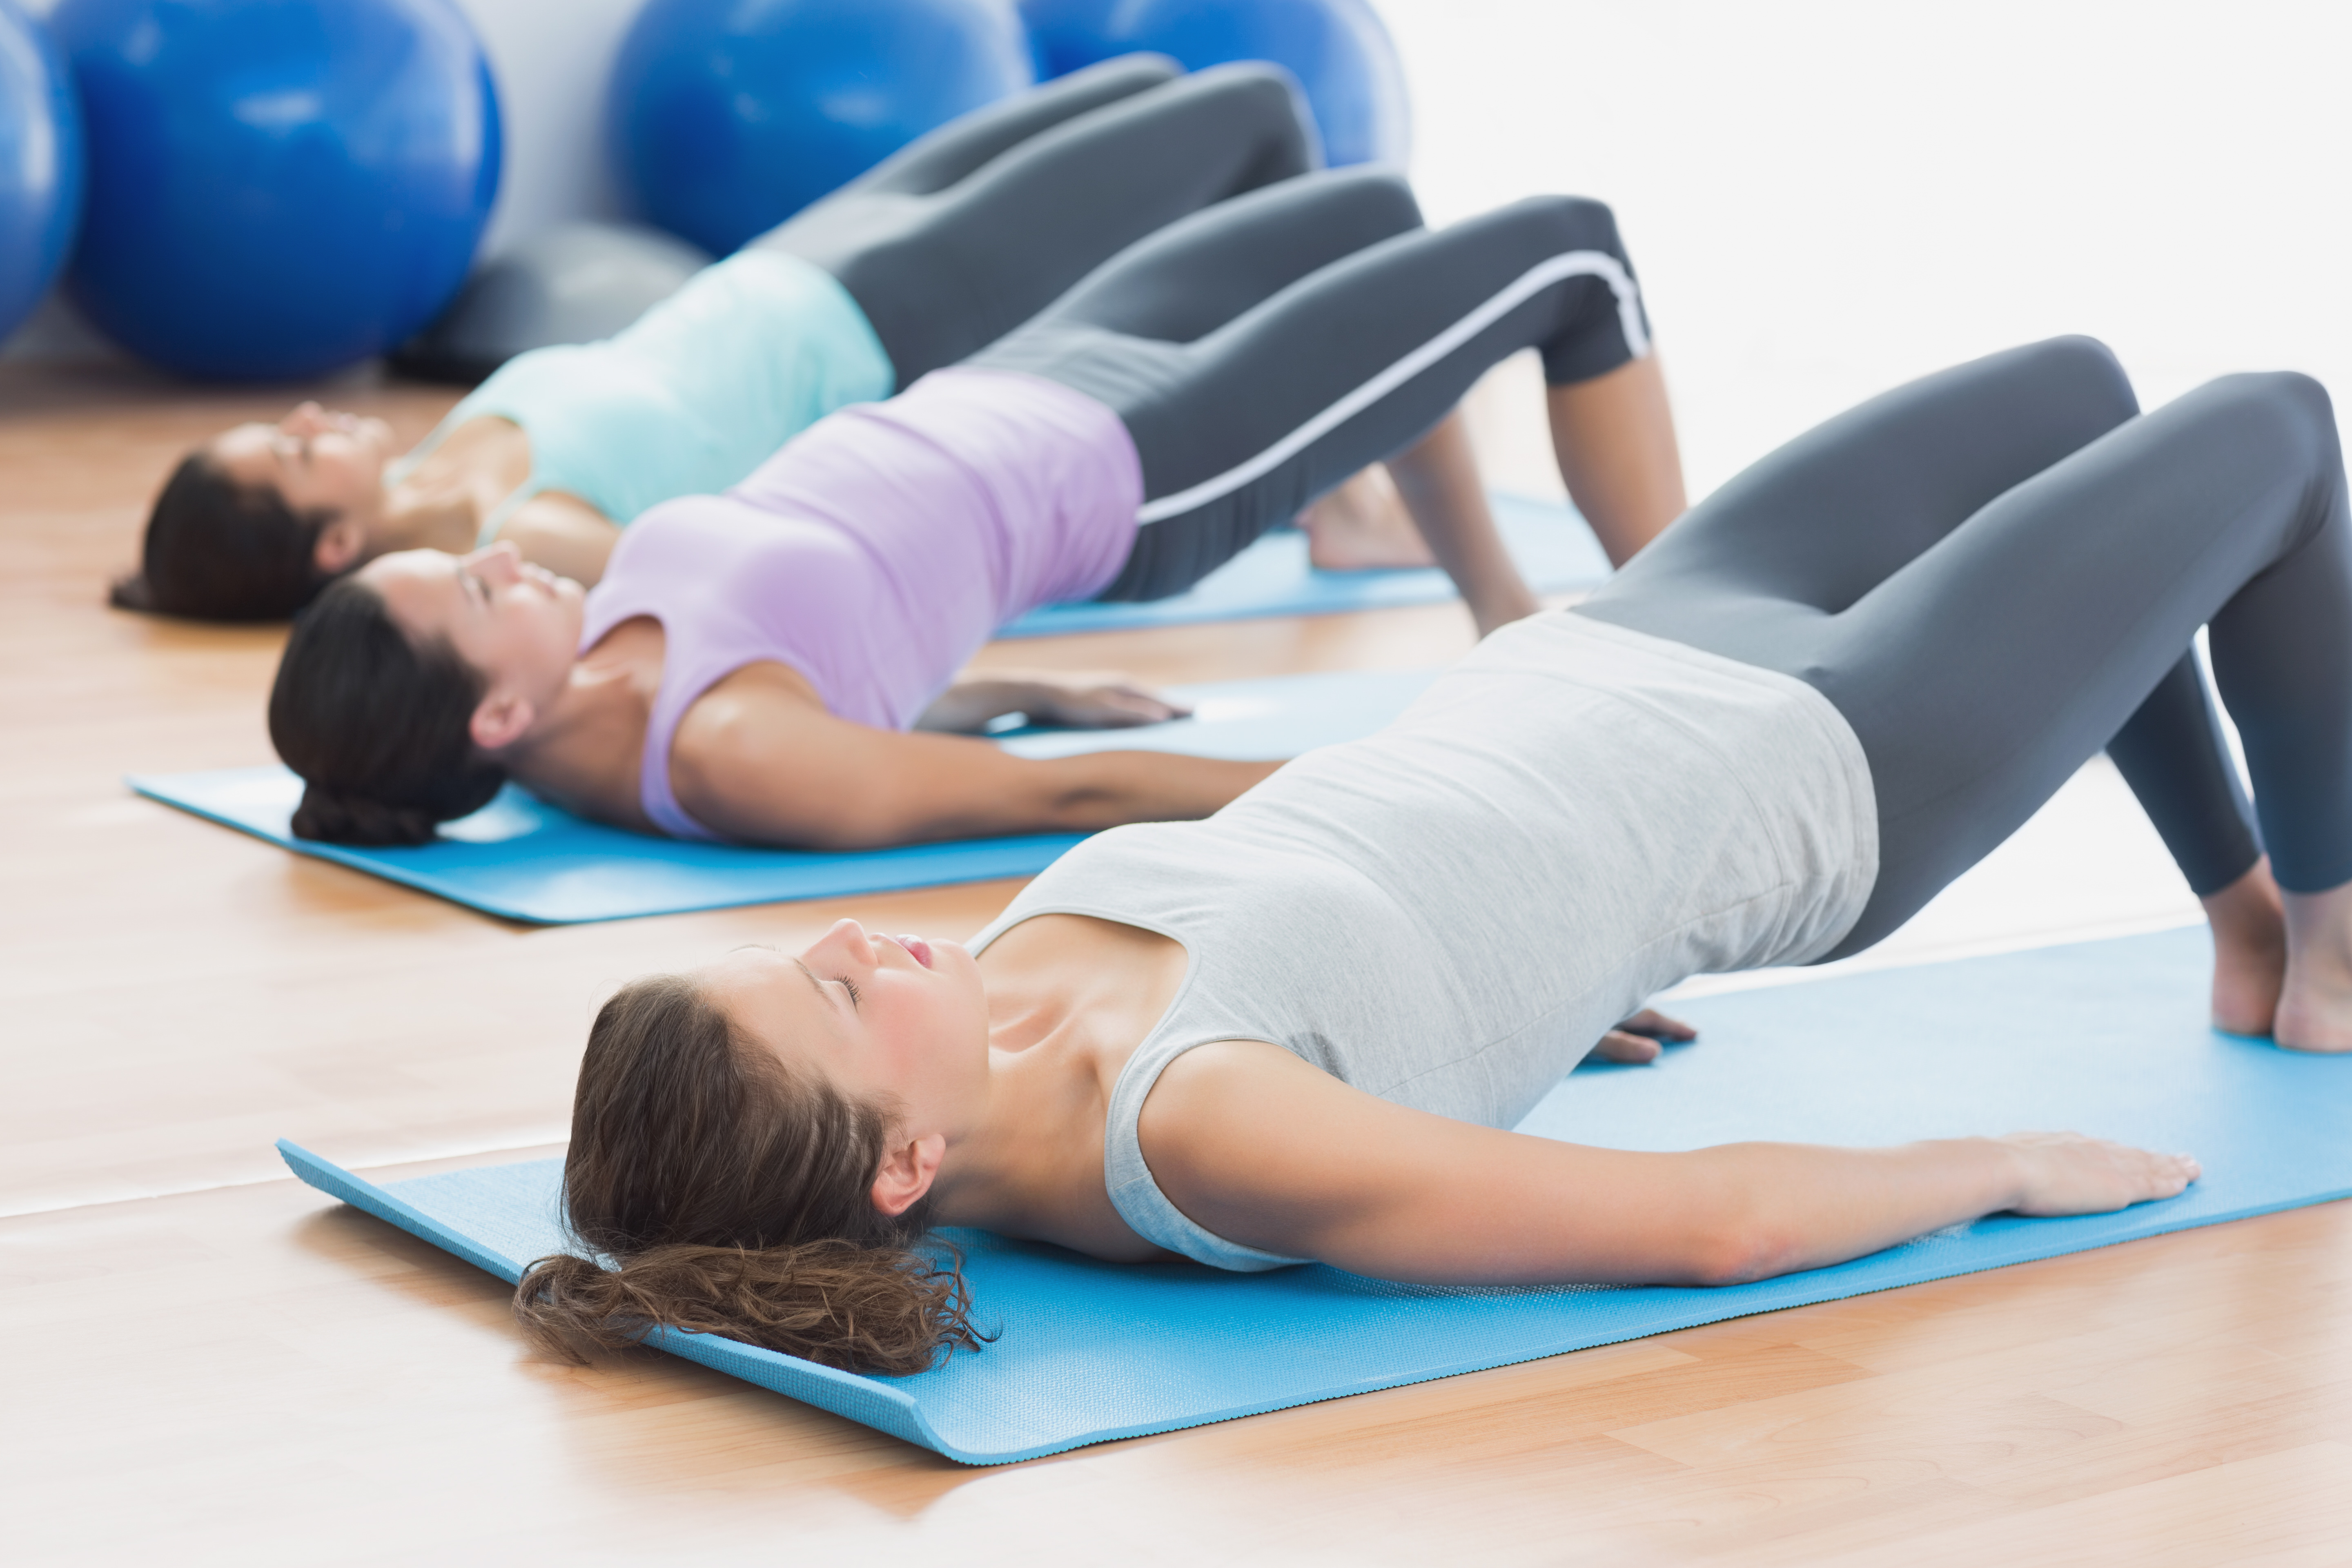 5 common mistakes made during core stability exercises